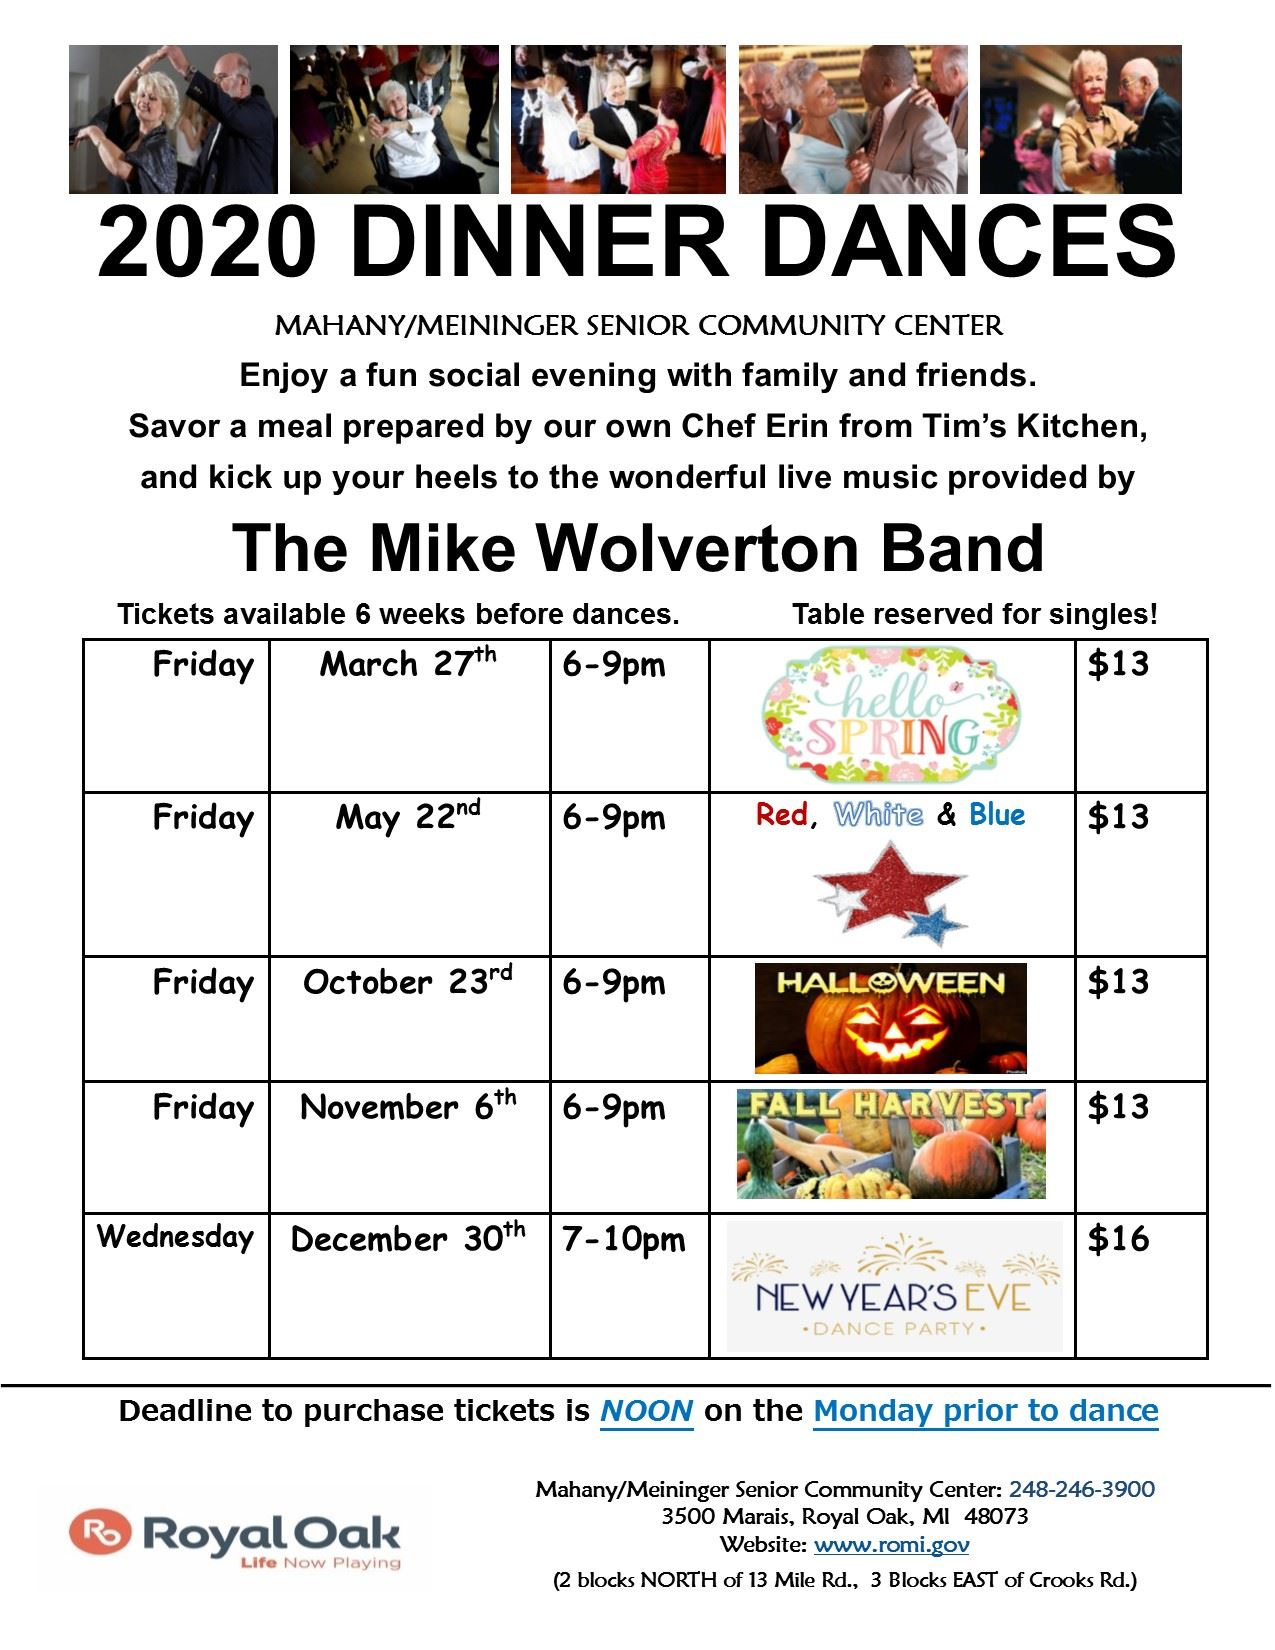 2020-DinnerDance-ALL rv123019